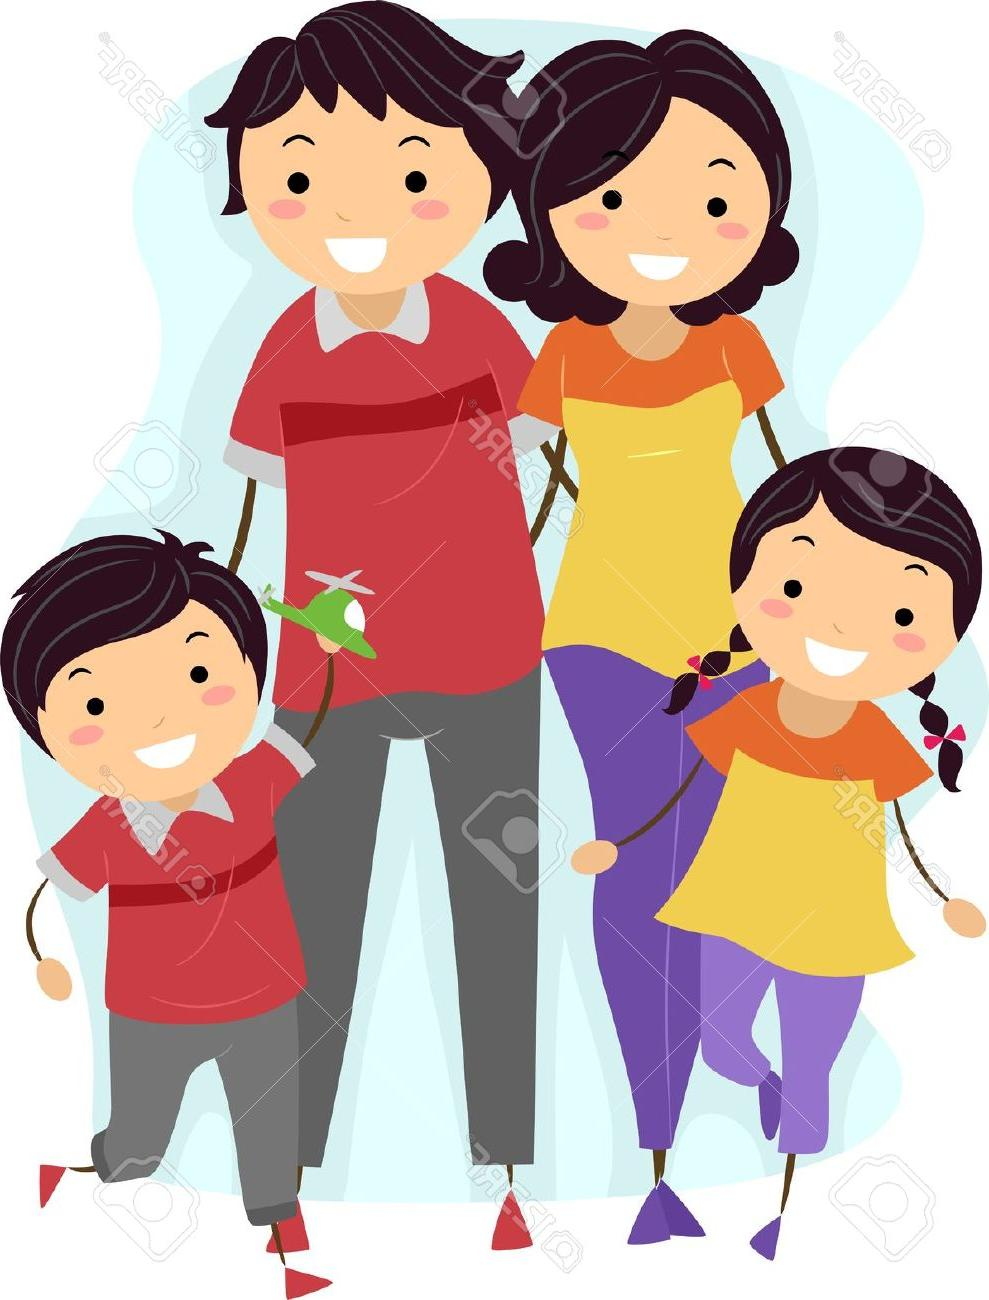 989x1300 Family Member Clipart Free Download Clip Art